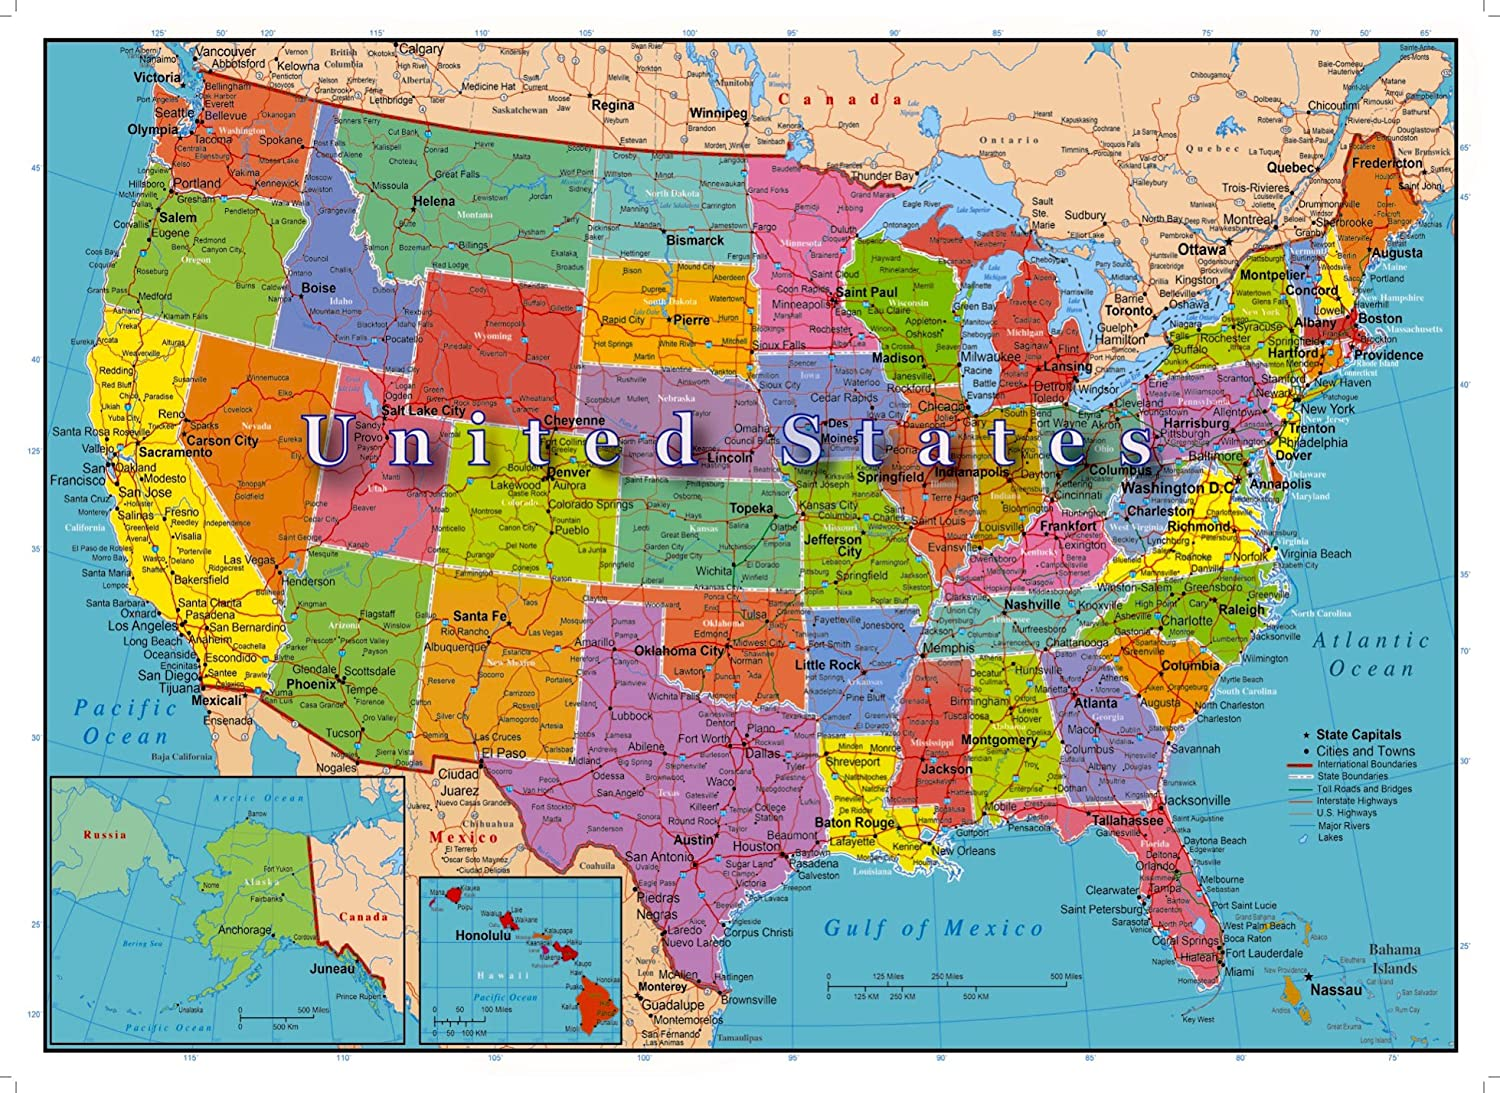 Real Map Of The United States.United States Of America Map 1000 Piece Jigsaw Puzzle Highways Rivers State Capitals